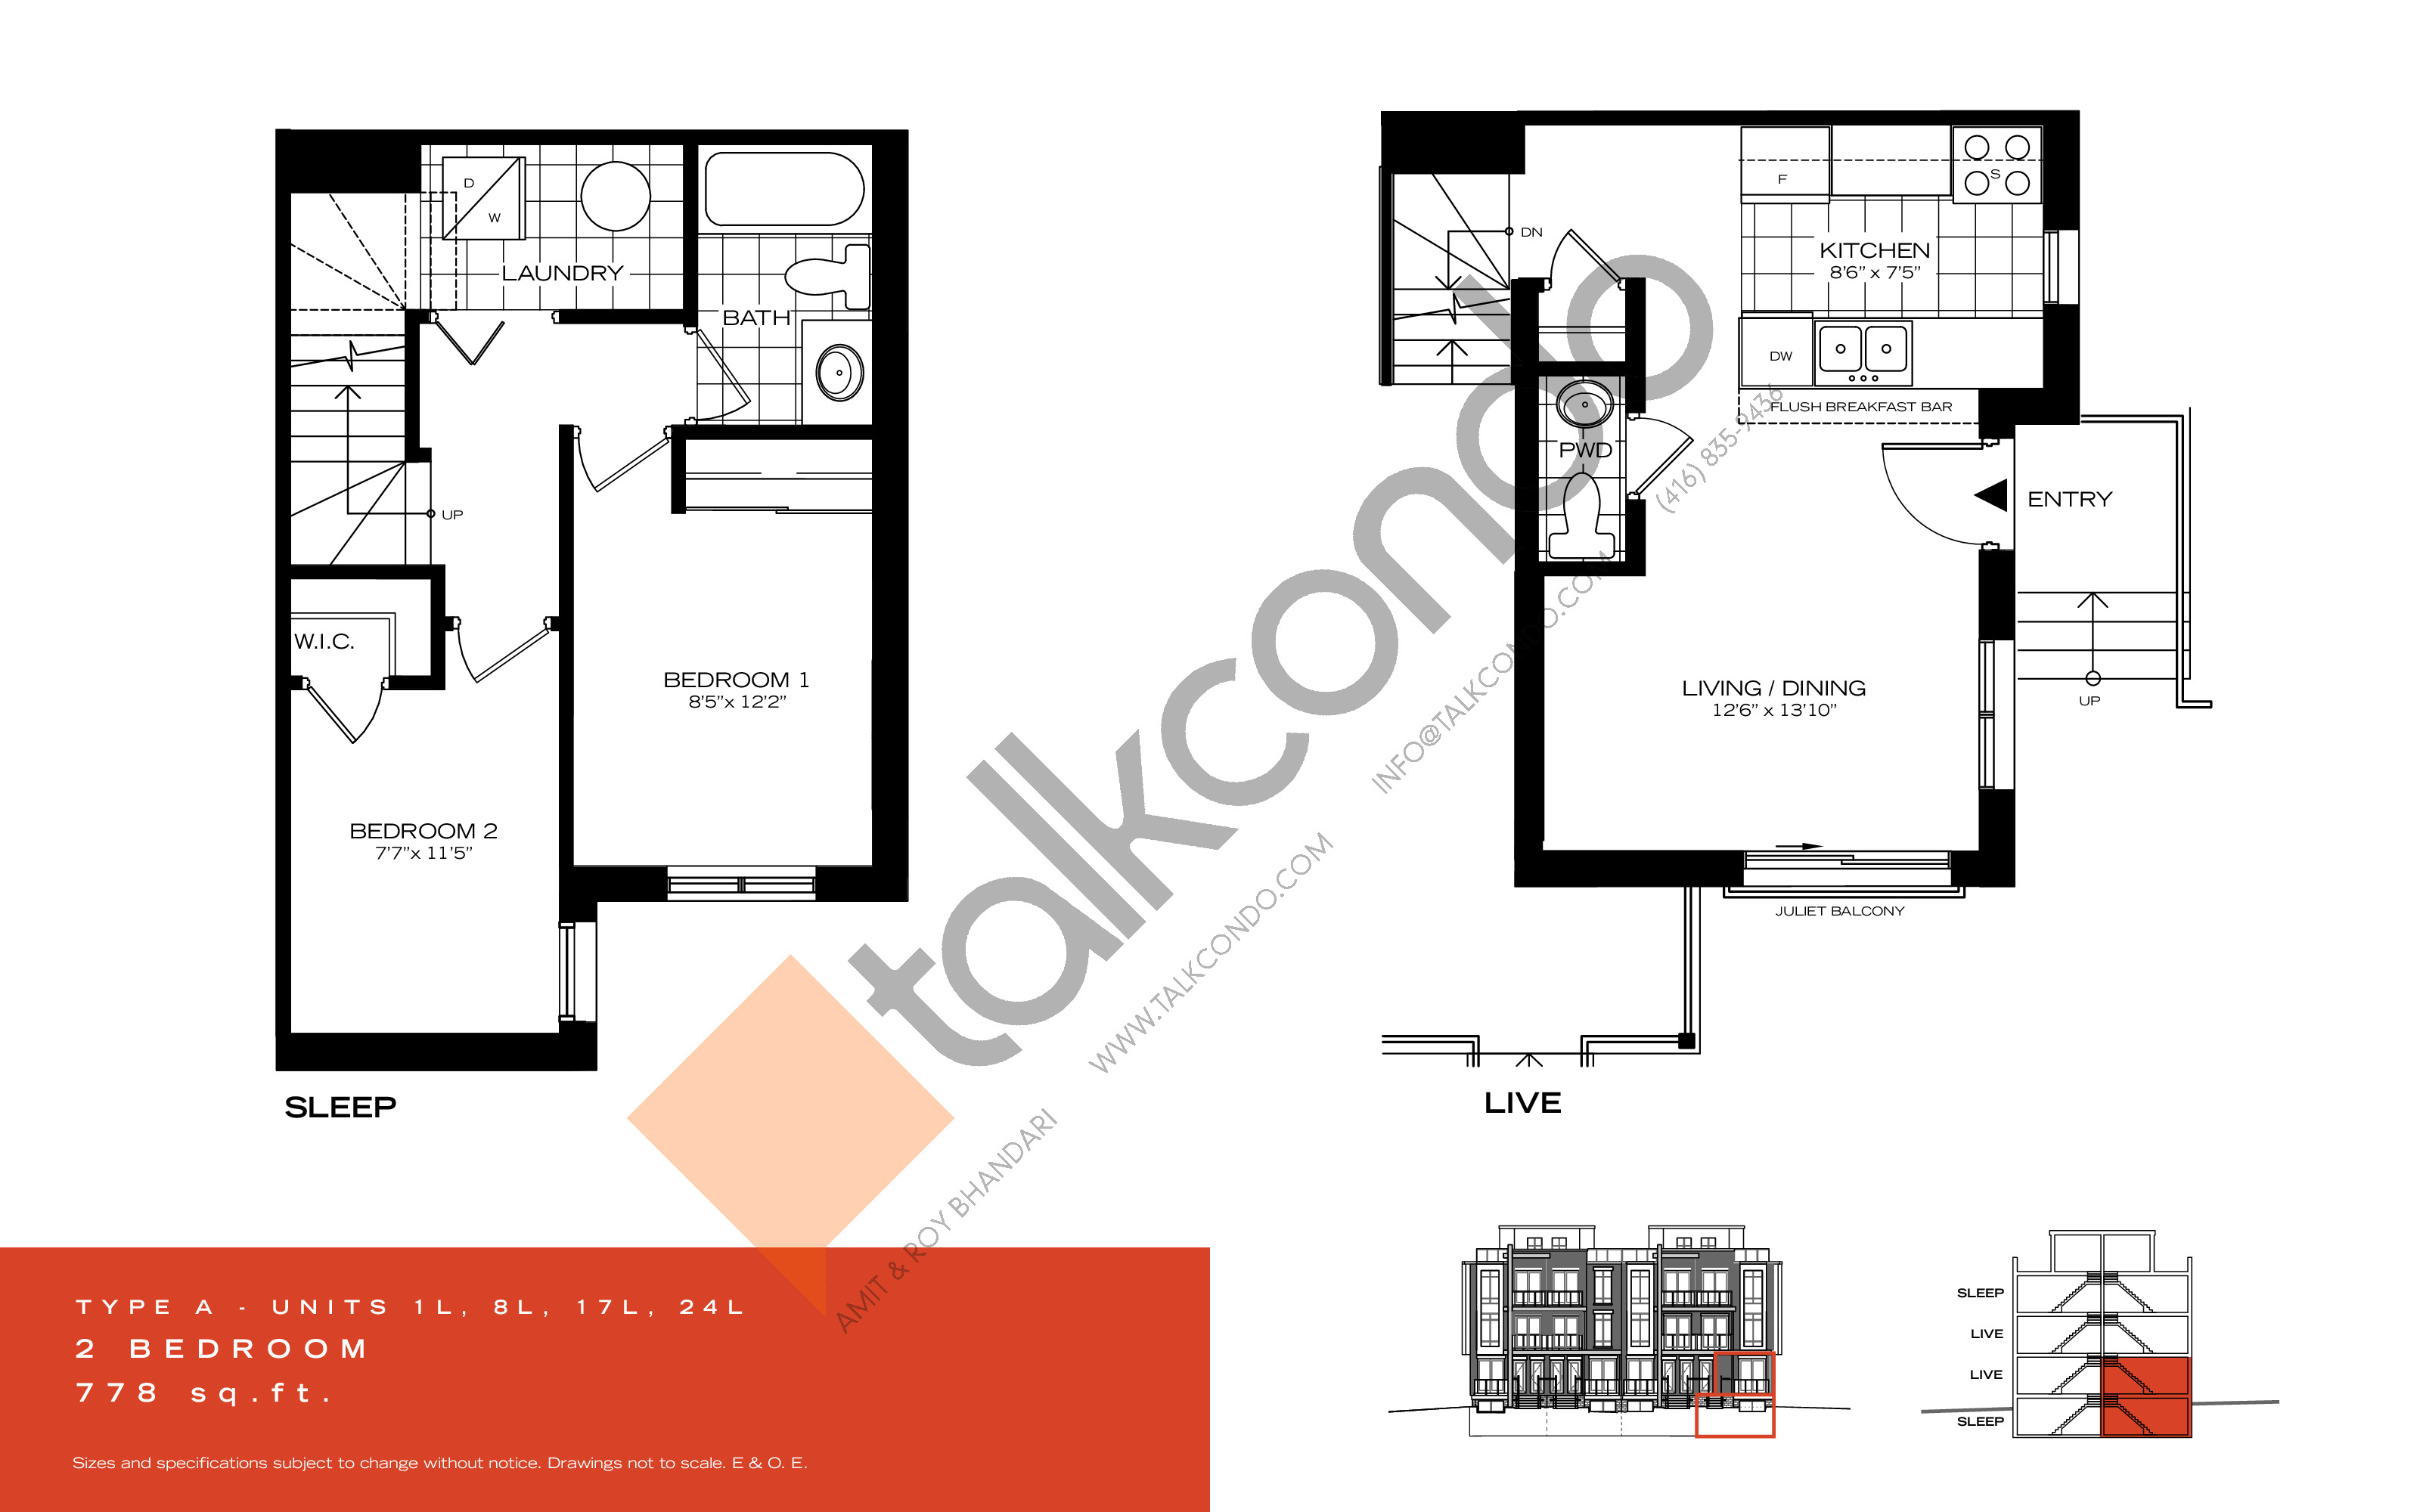 Type A Floor Plan at Wycliffe at the Promenade - 778 sq.ft